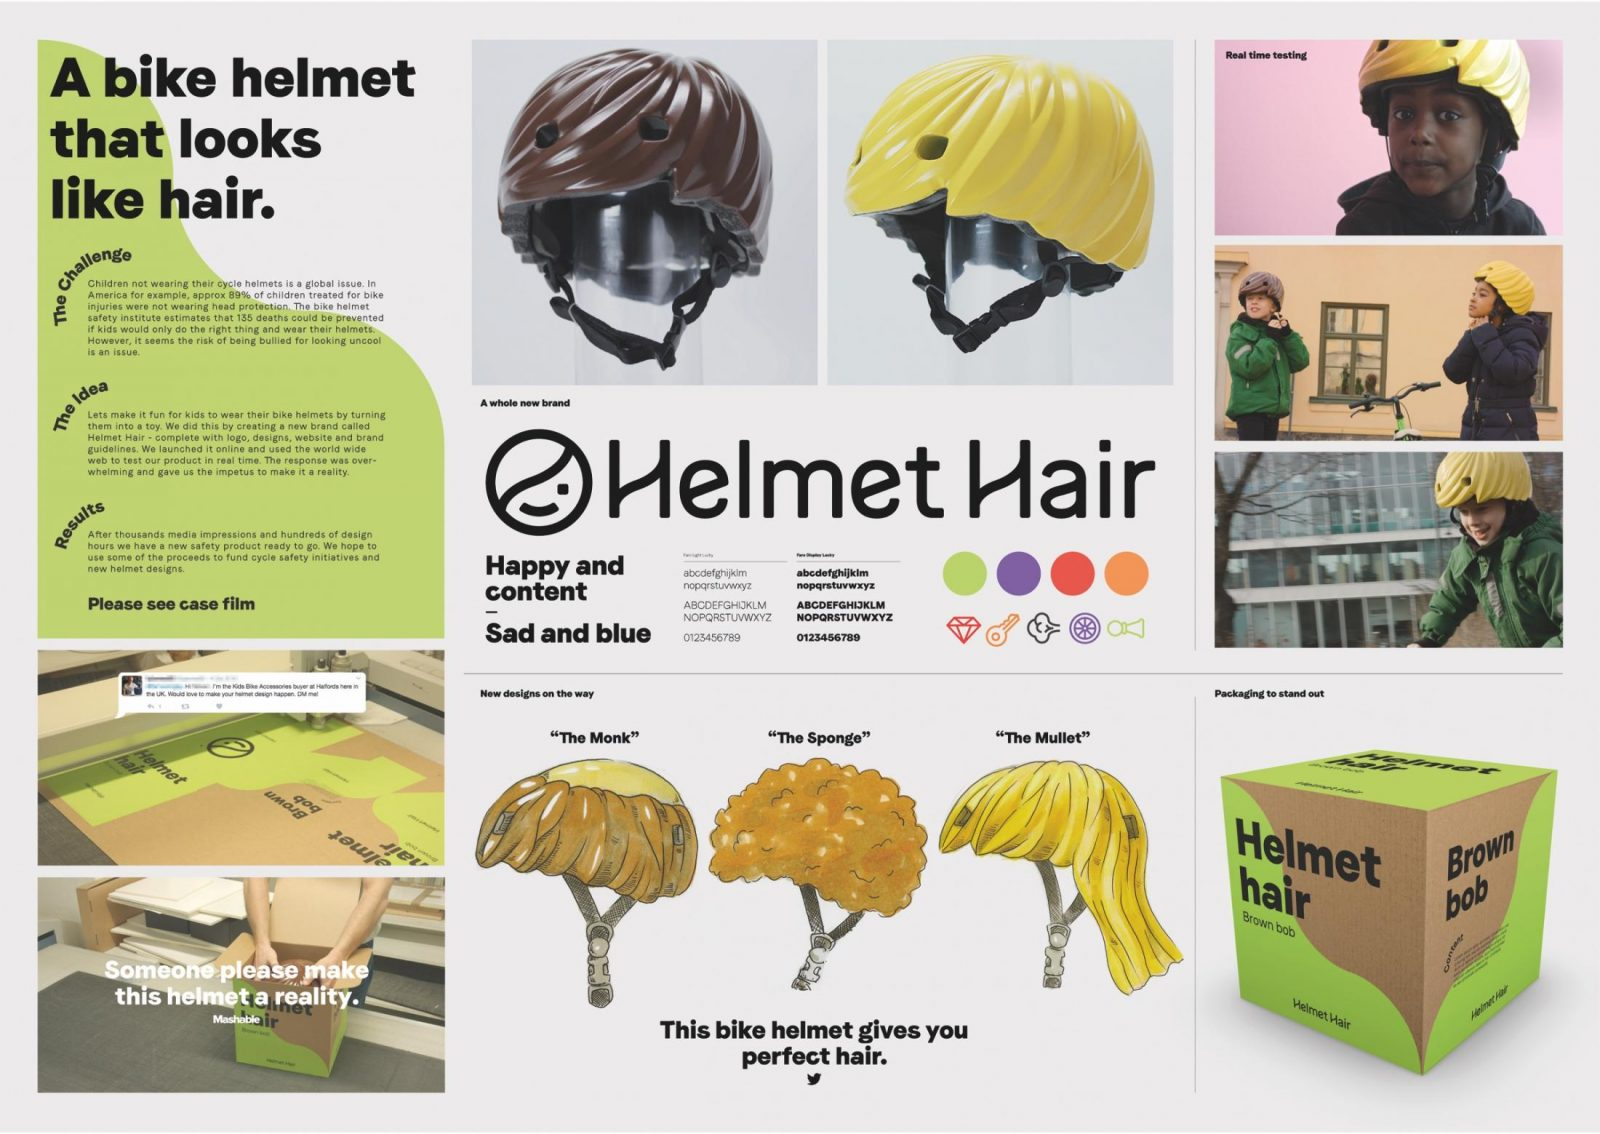 Helmet Hair Shows That Style And Safety Can Go Hand In Hand Nord Ddb